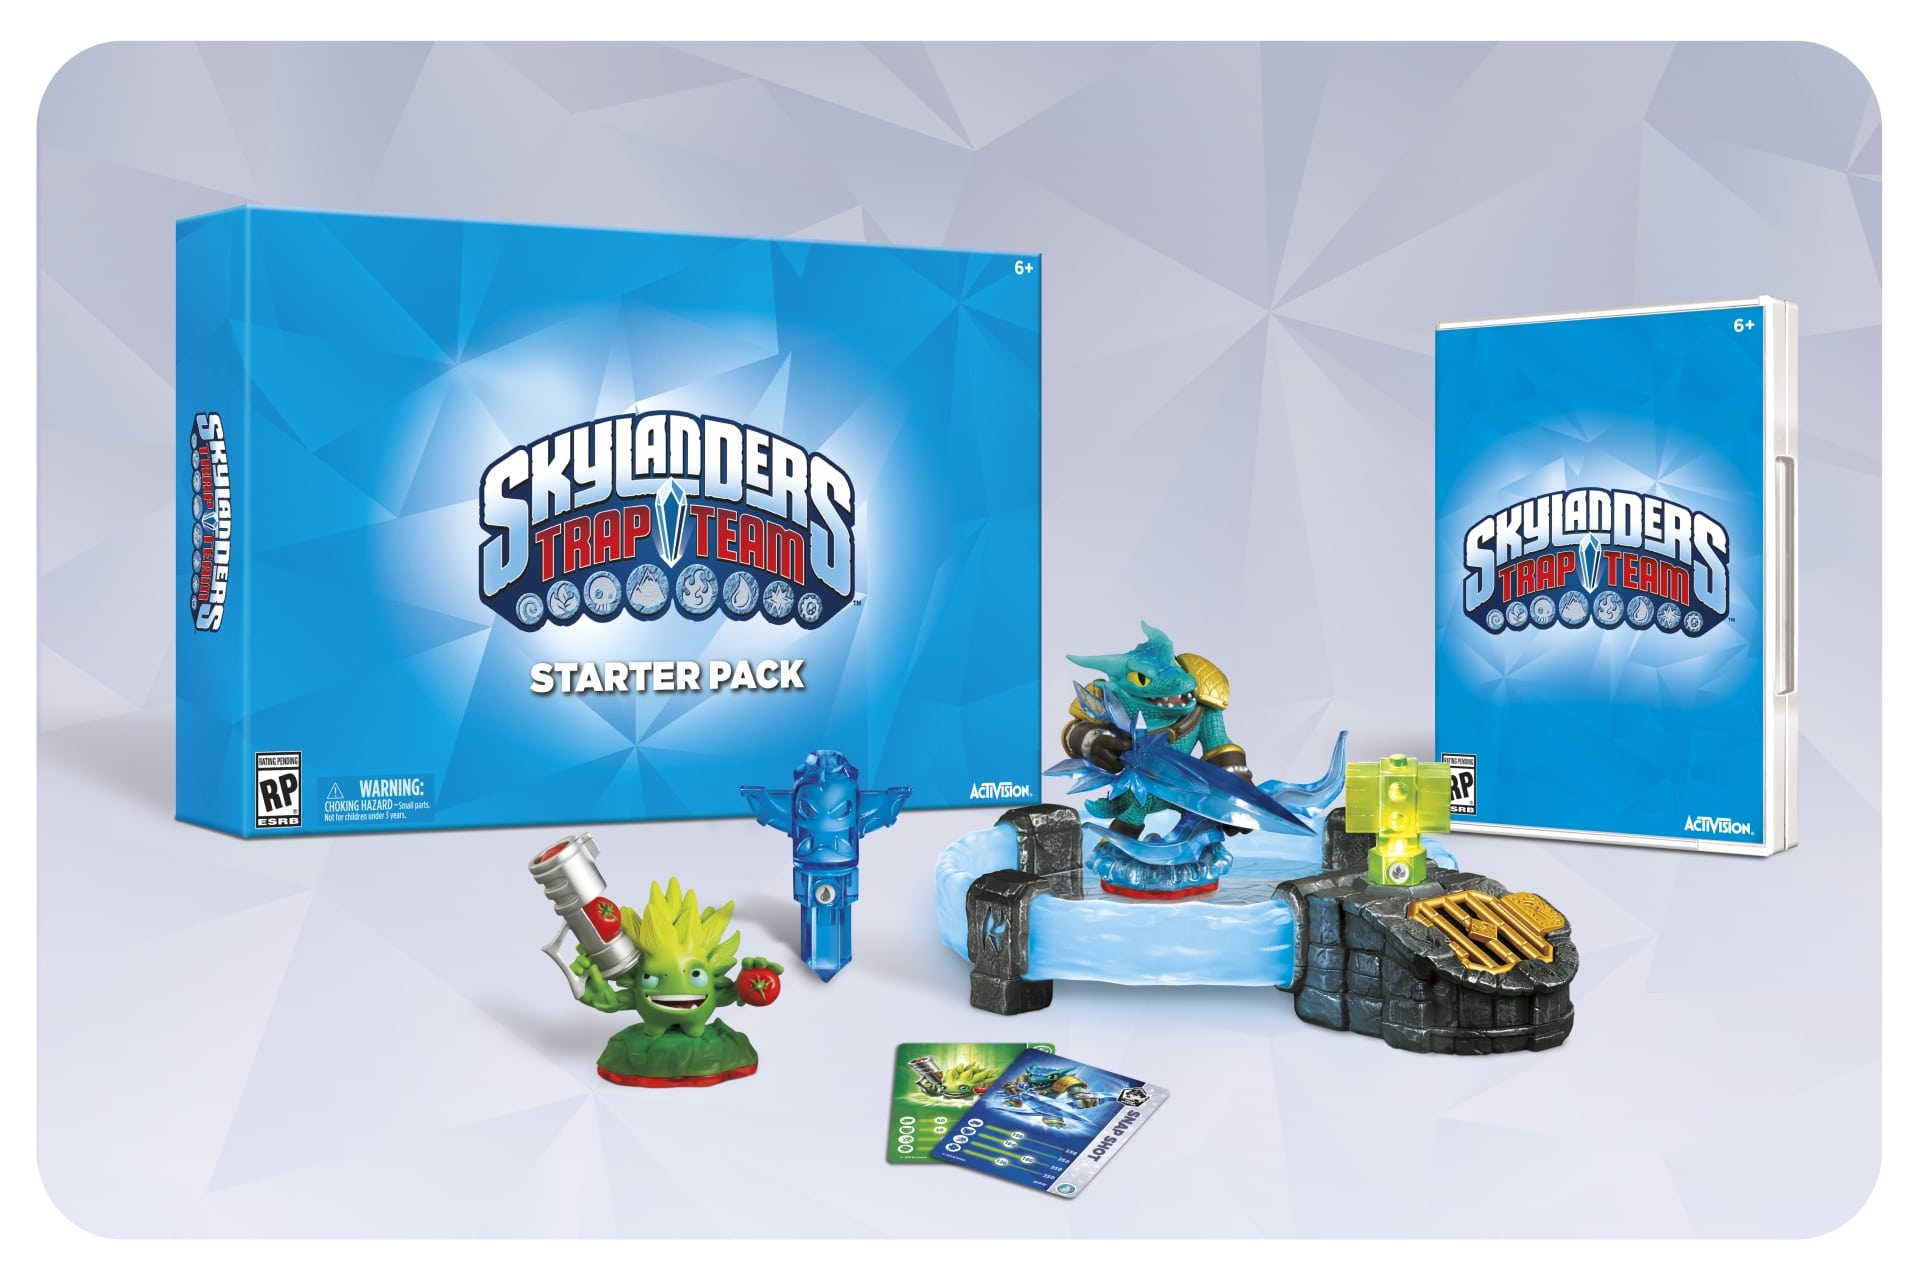 Skylanders Trap Team to Feature a New Gameplay Mode